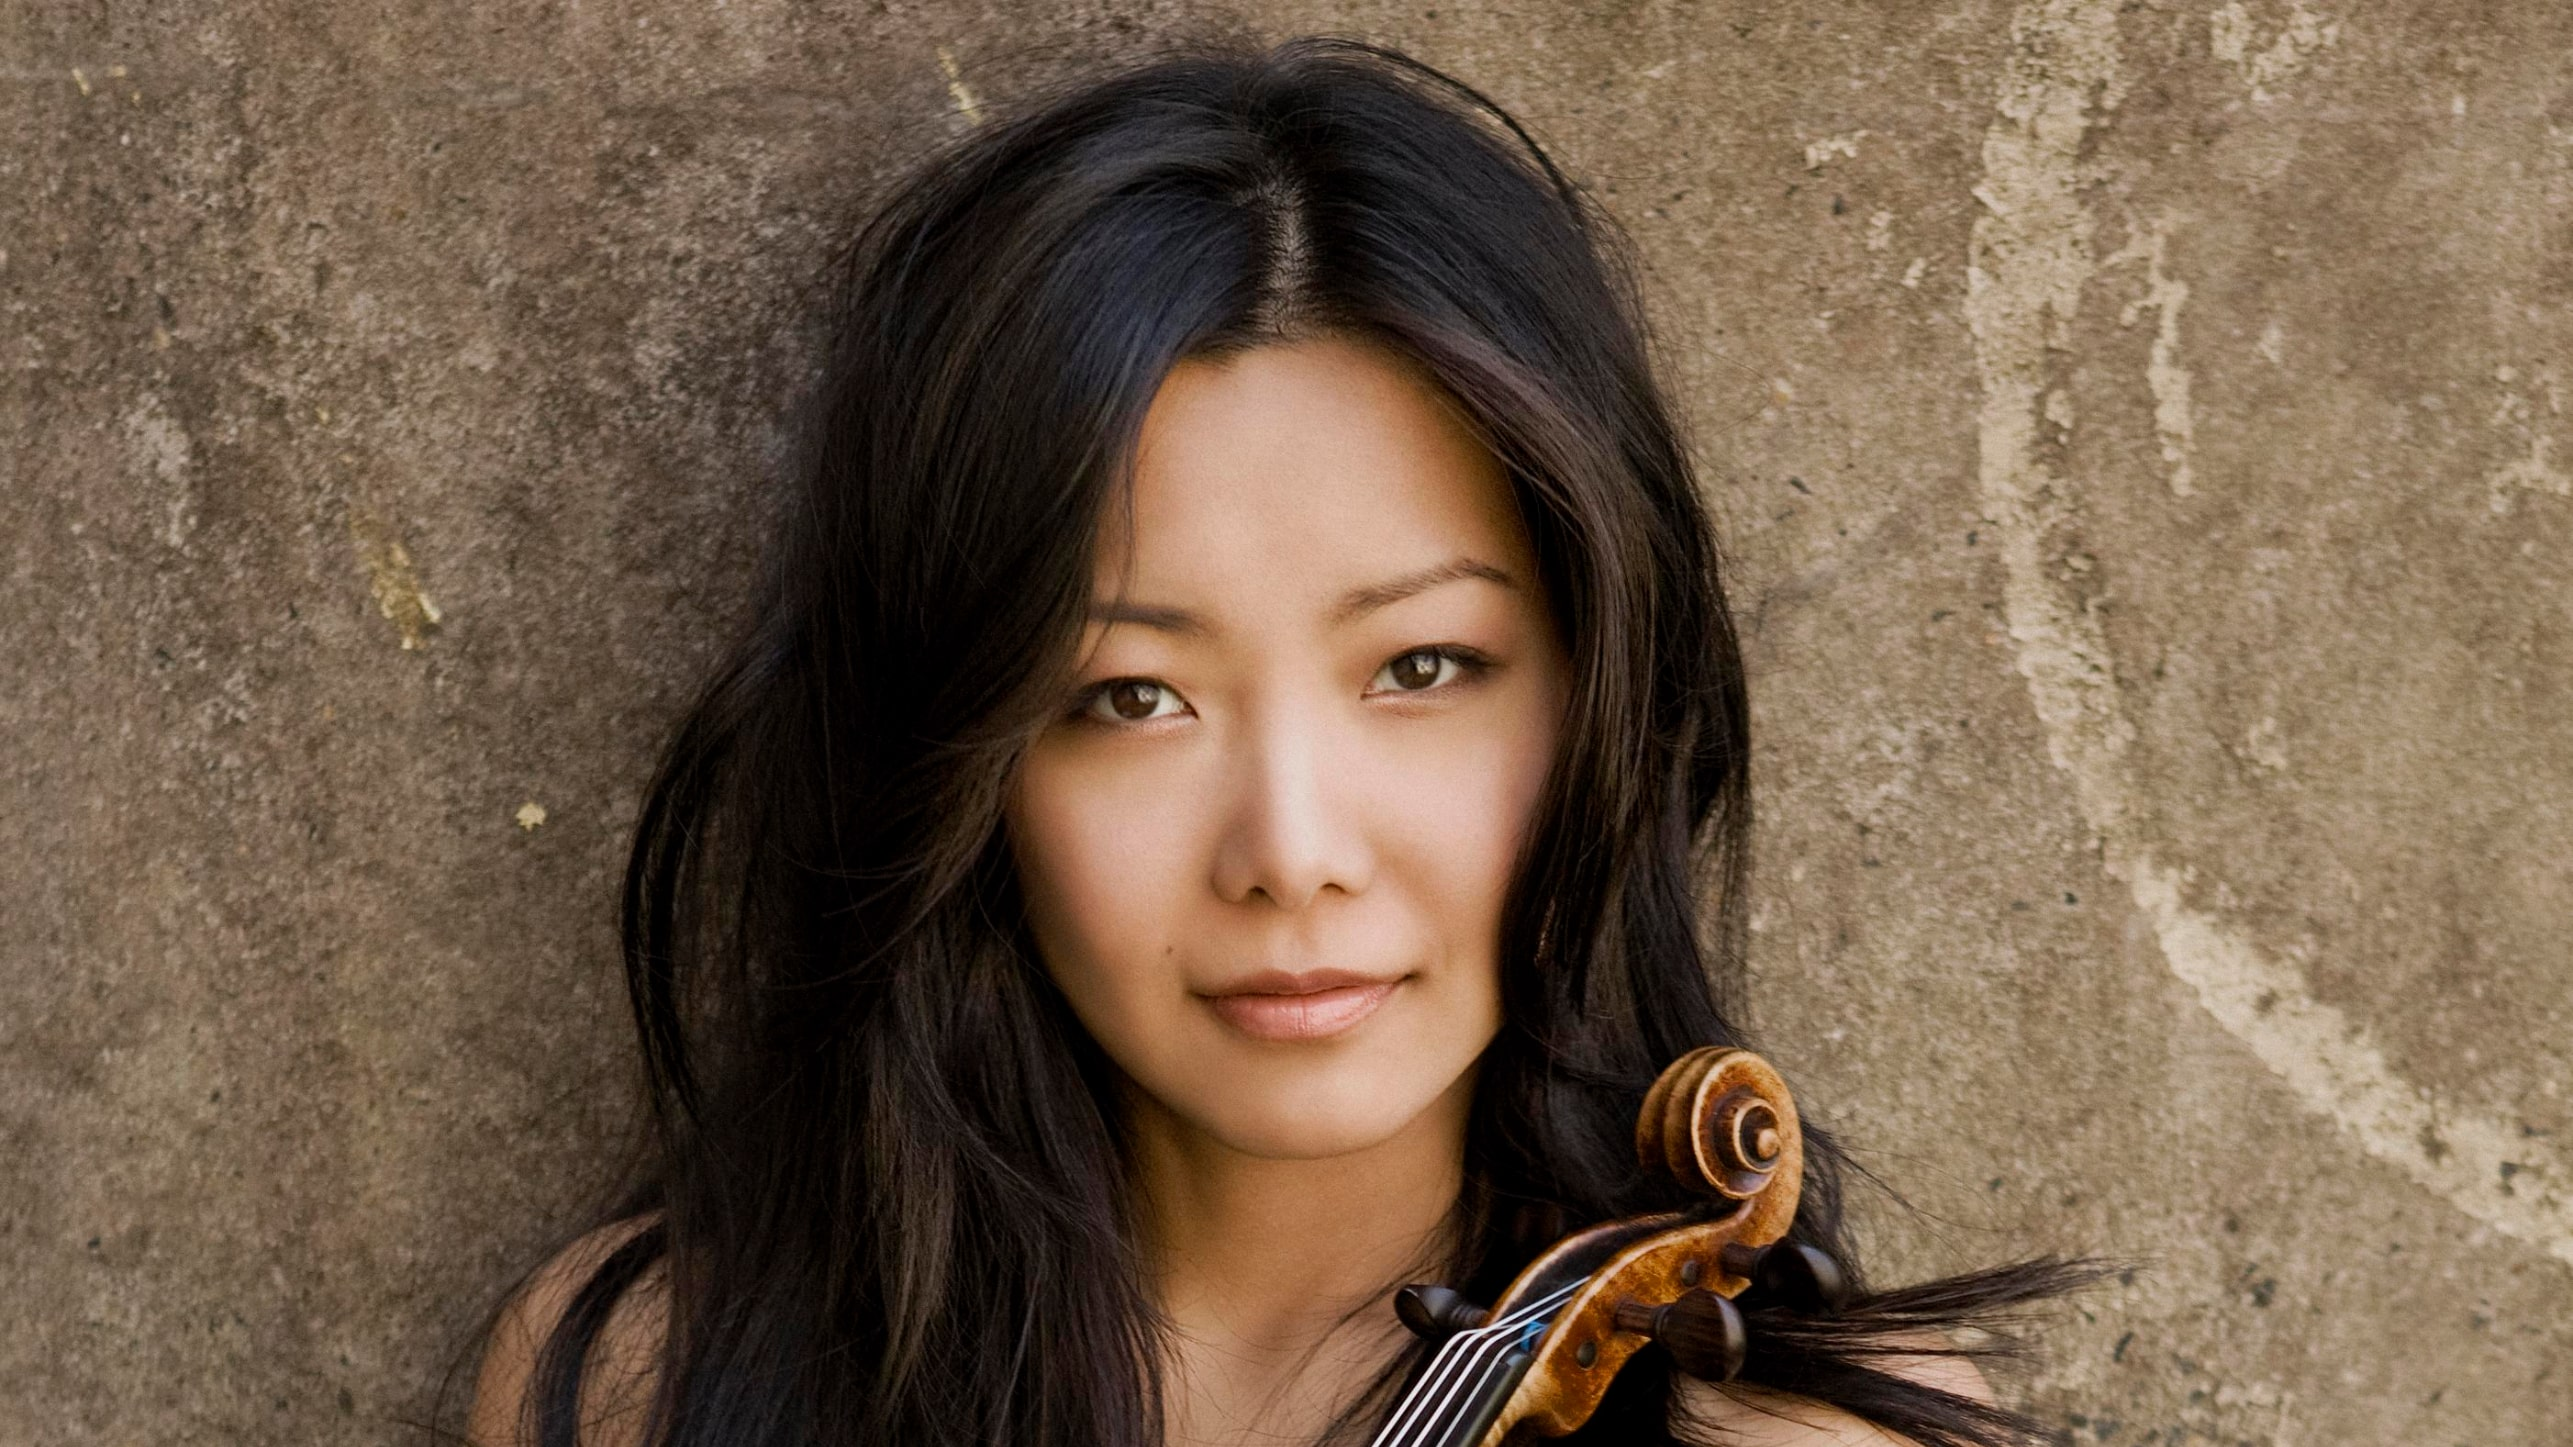 A violinist (Susanne Hou) holding her violin sitting against a stone wall.